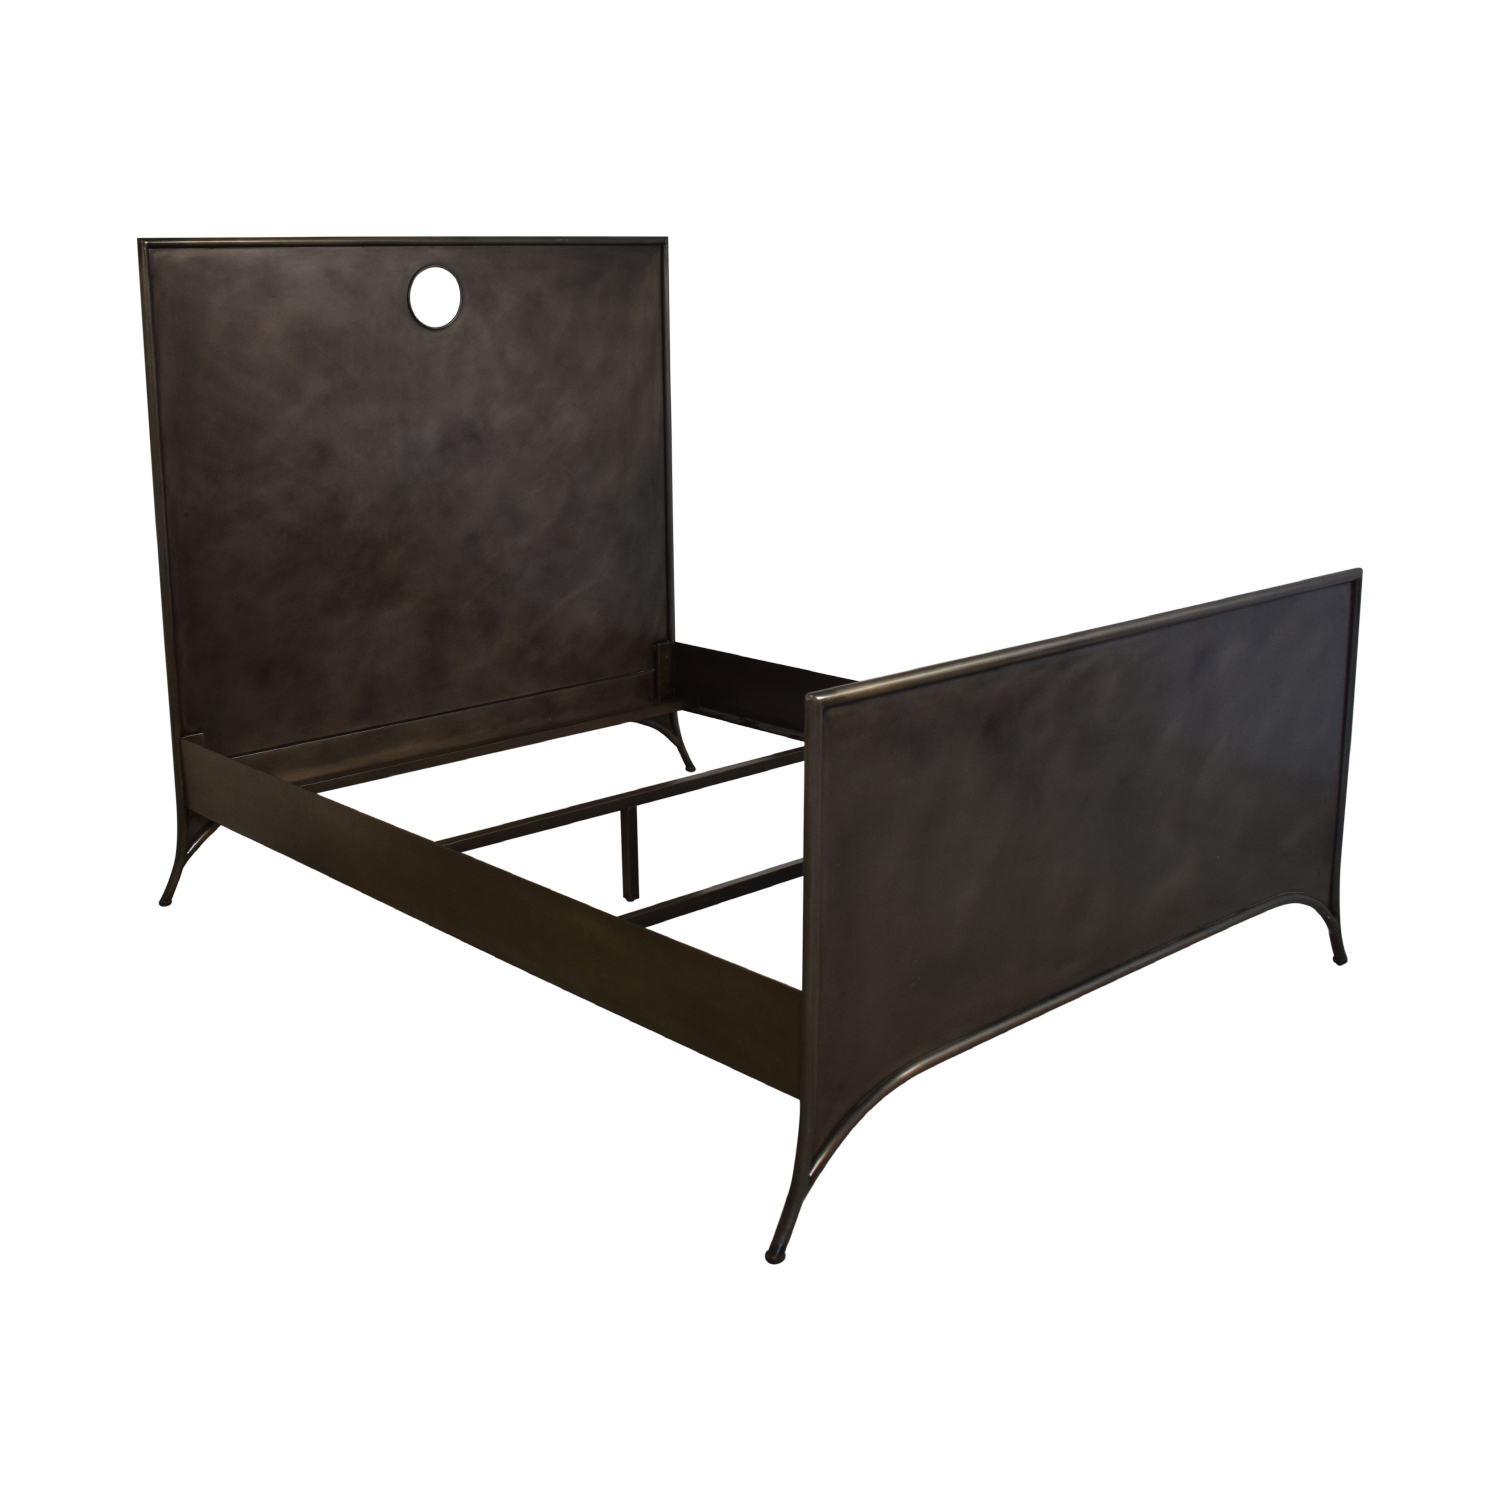 Restoration Hardware Restoration Hardware Queen 19th C. Keyhole Metal Square Bed with Footboard second hand